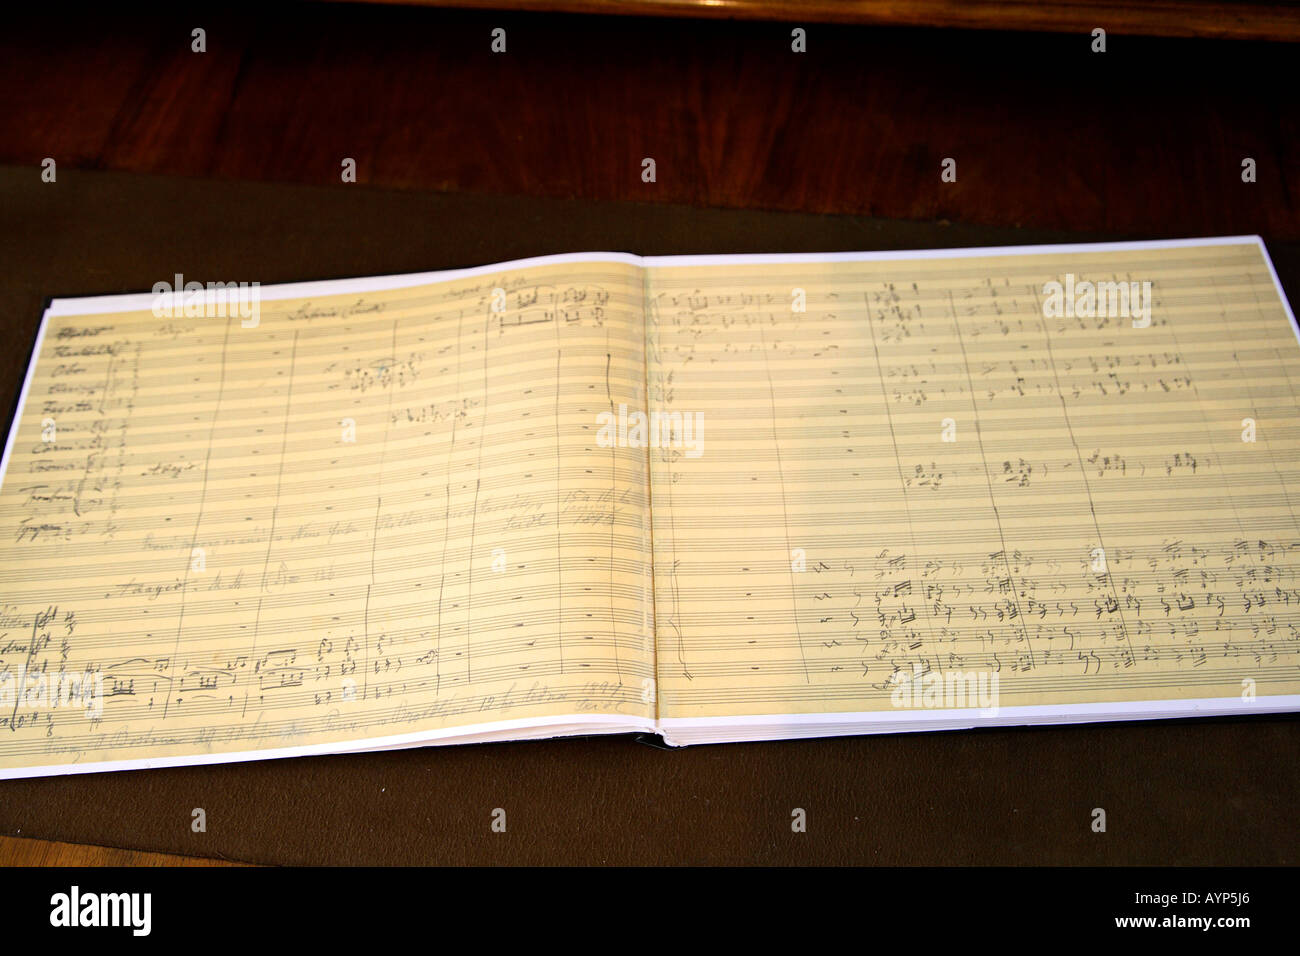 Empty room with chair violin and sheet music on floor photograph - Prague Dvorak Museum Autograph Score Symphony 9 E Minor Op 95 New World Muisc Classical